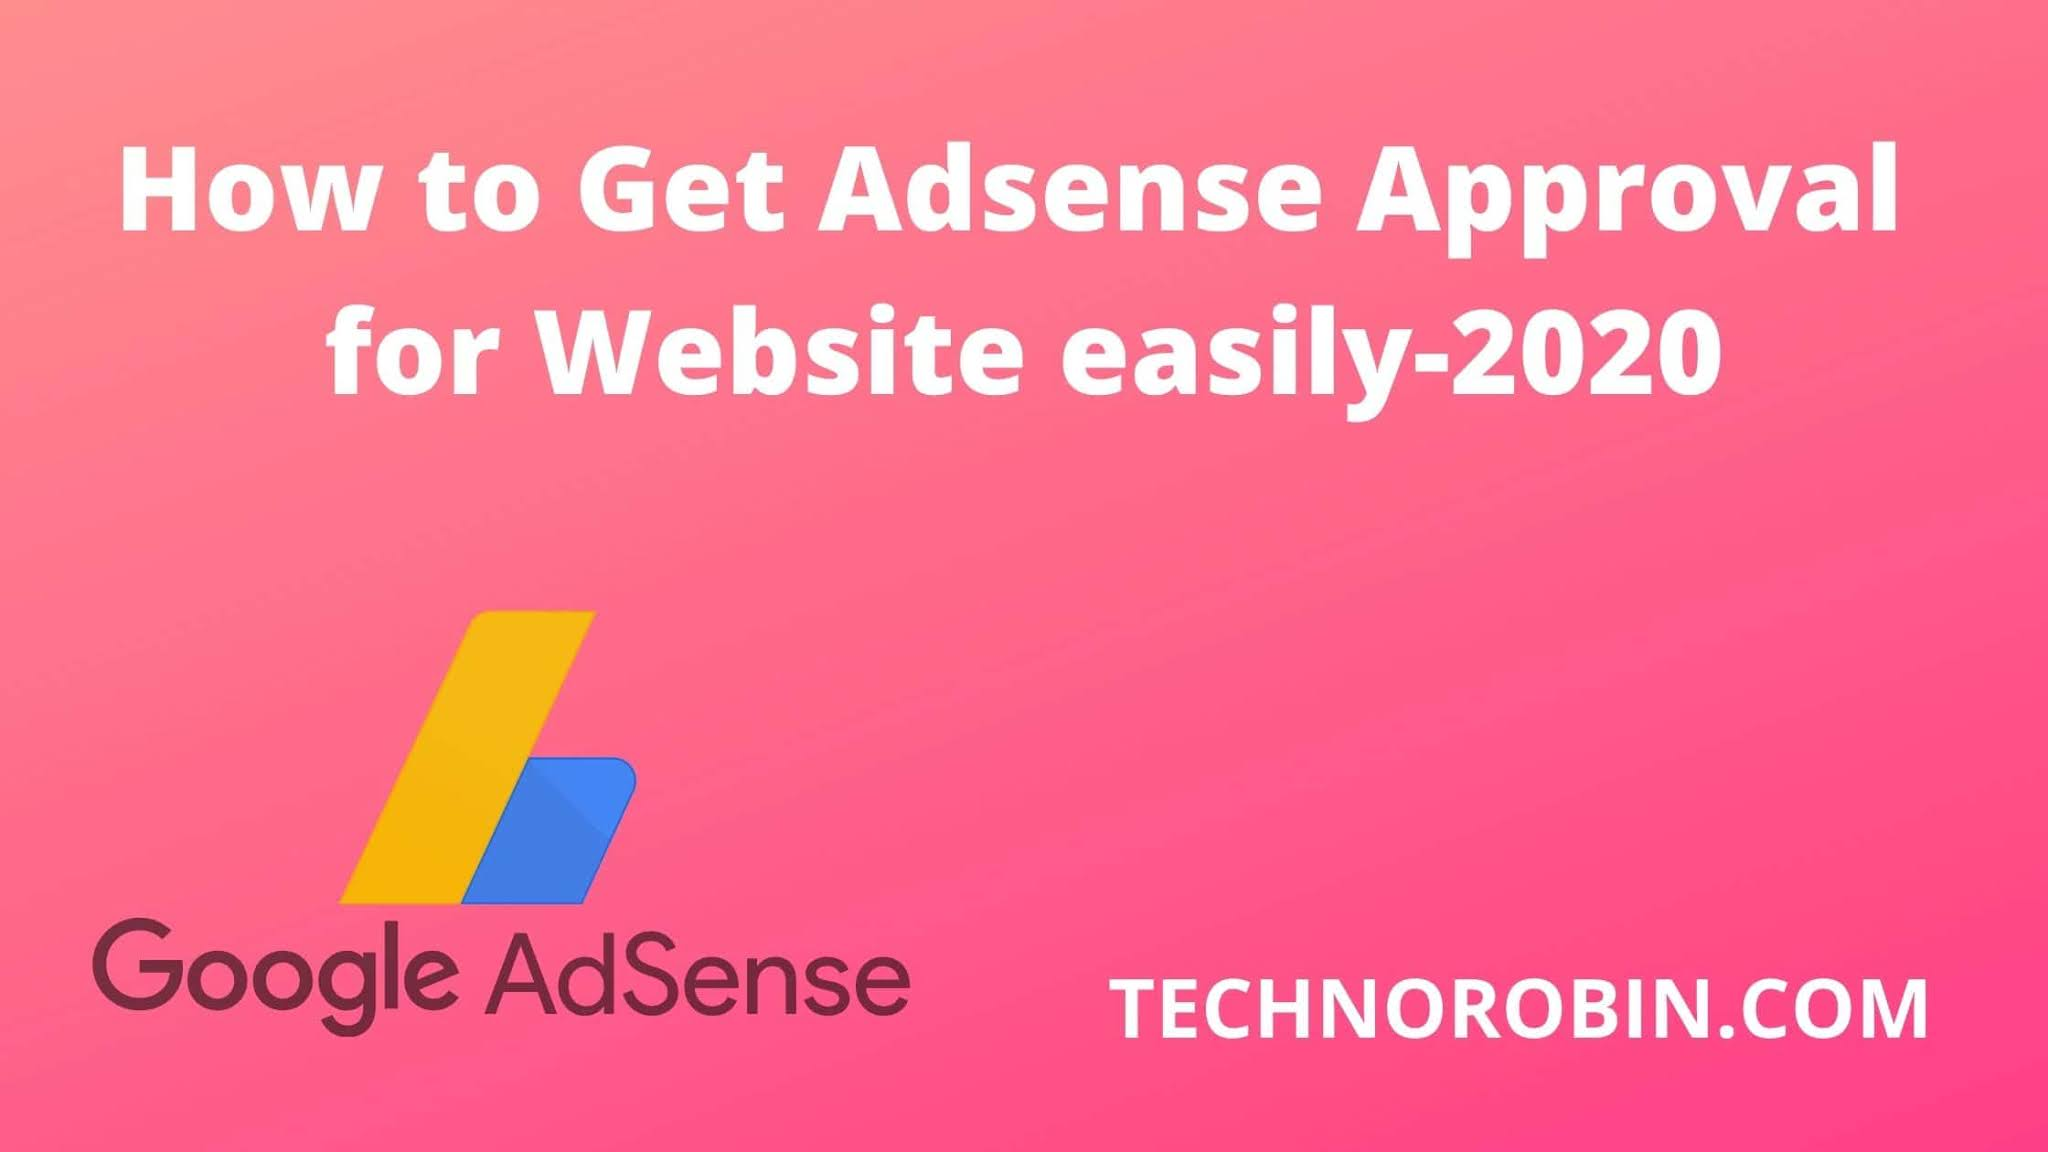 Follow these 12 steps to get Adsense Approval easily in 2021